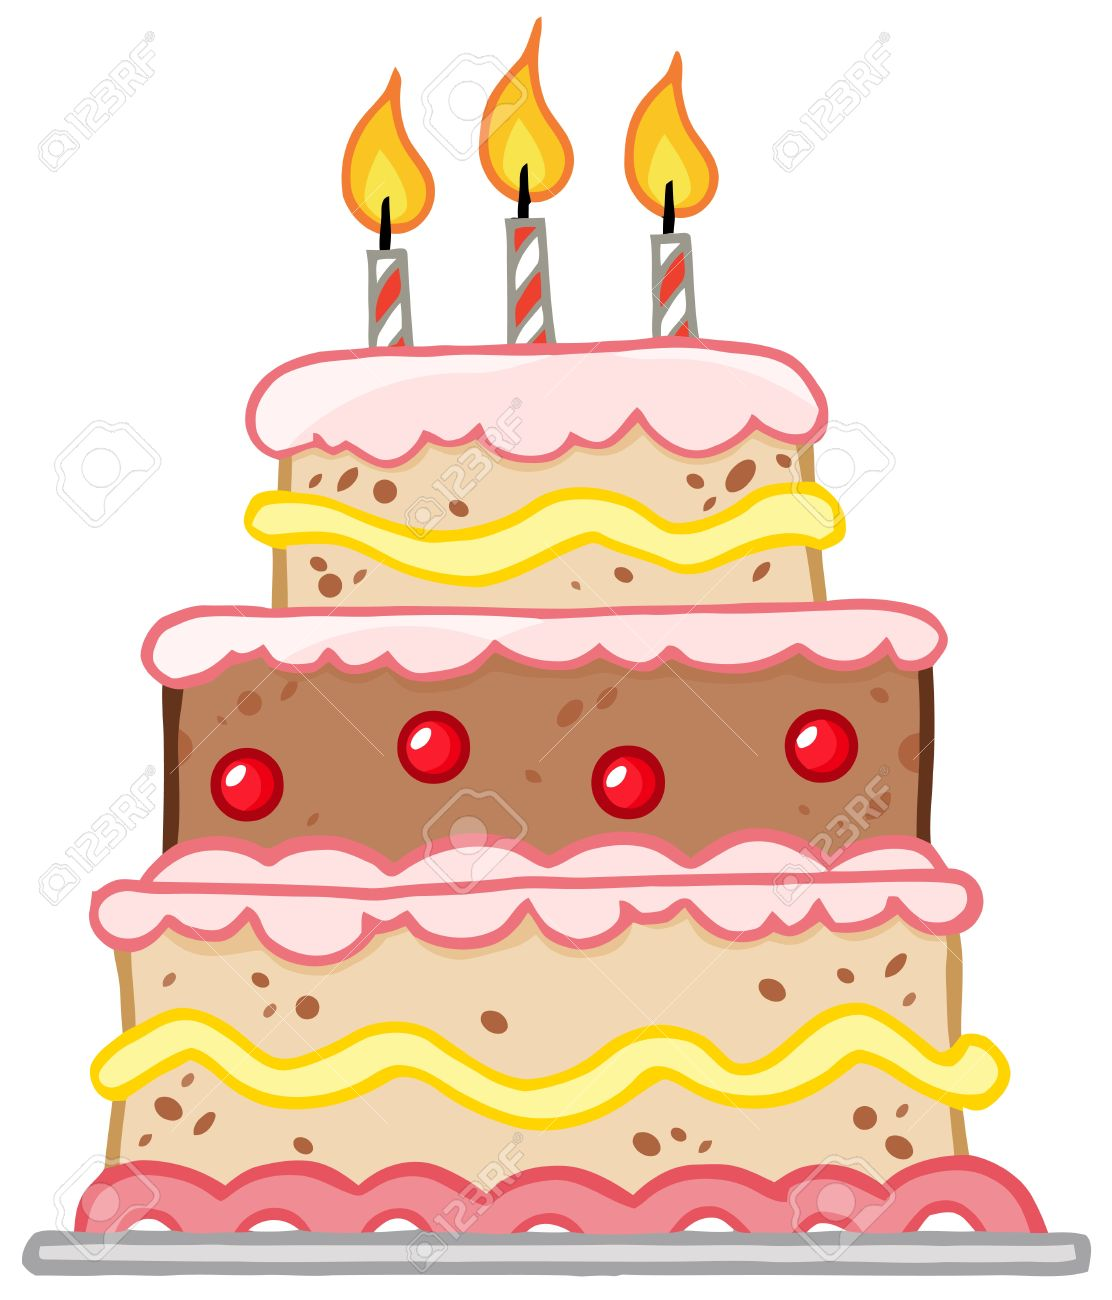 Three Layer Cake Clip Art : Tort clipart - Clipground